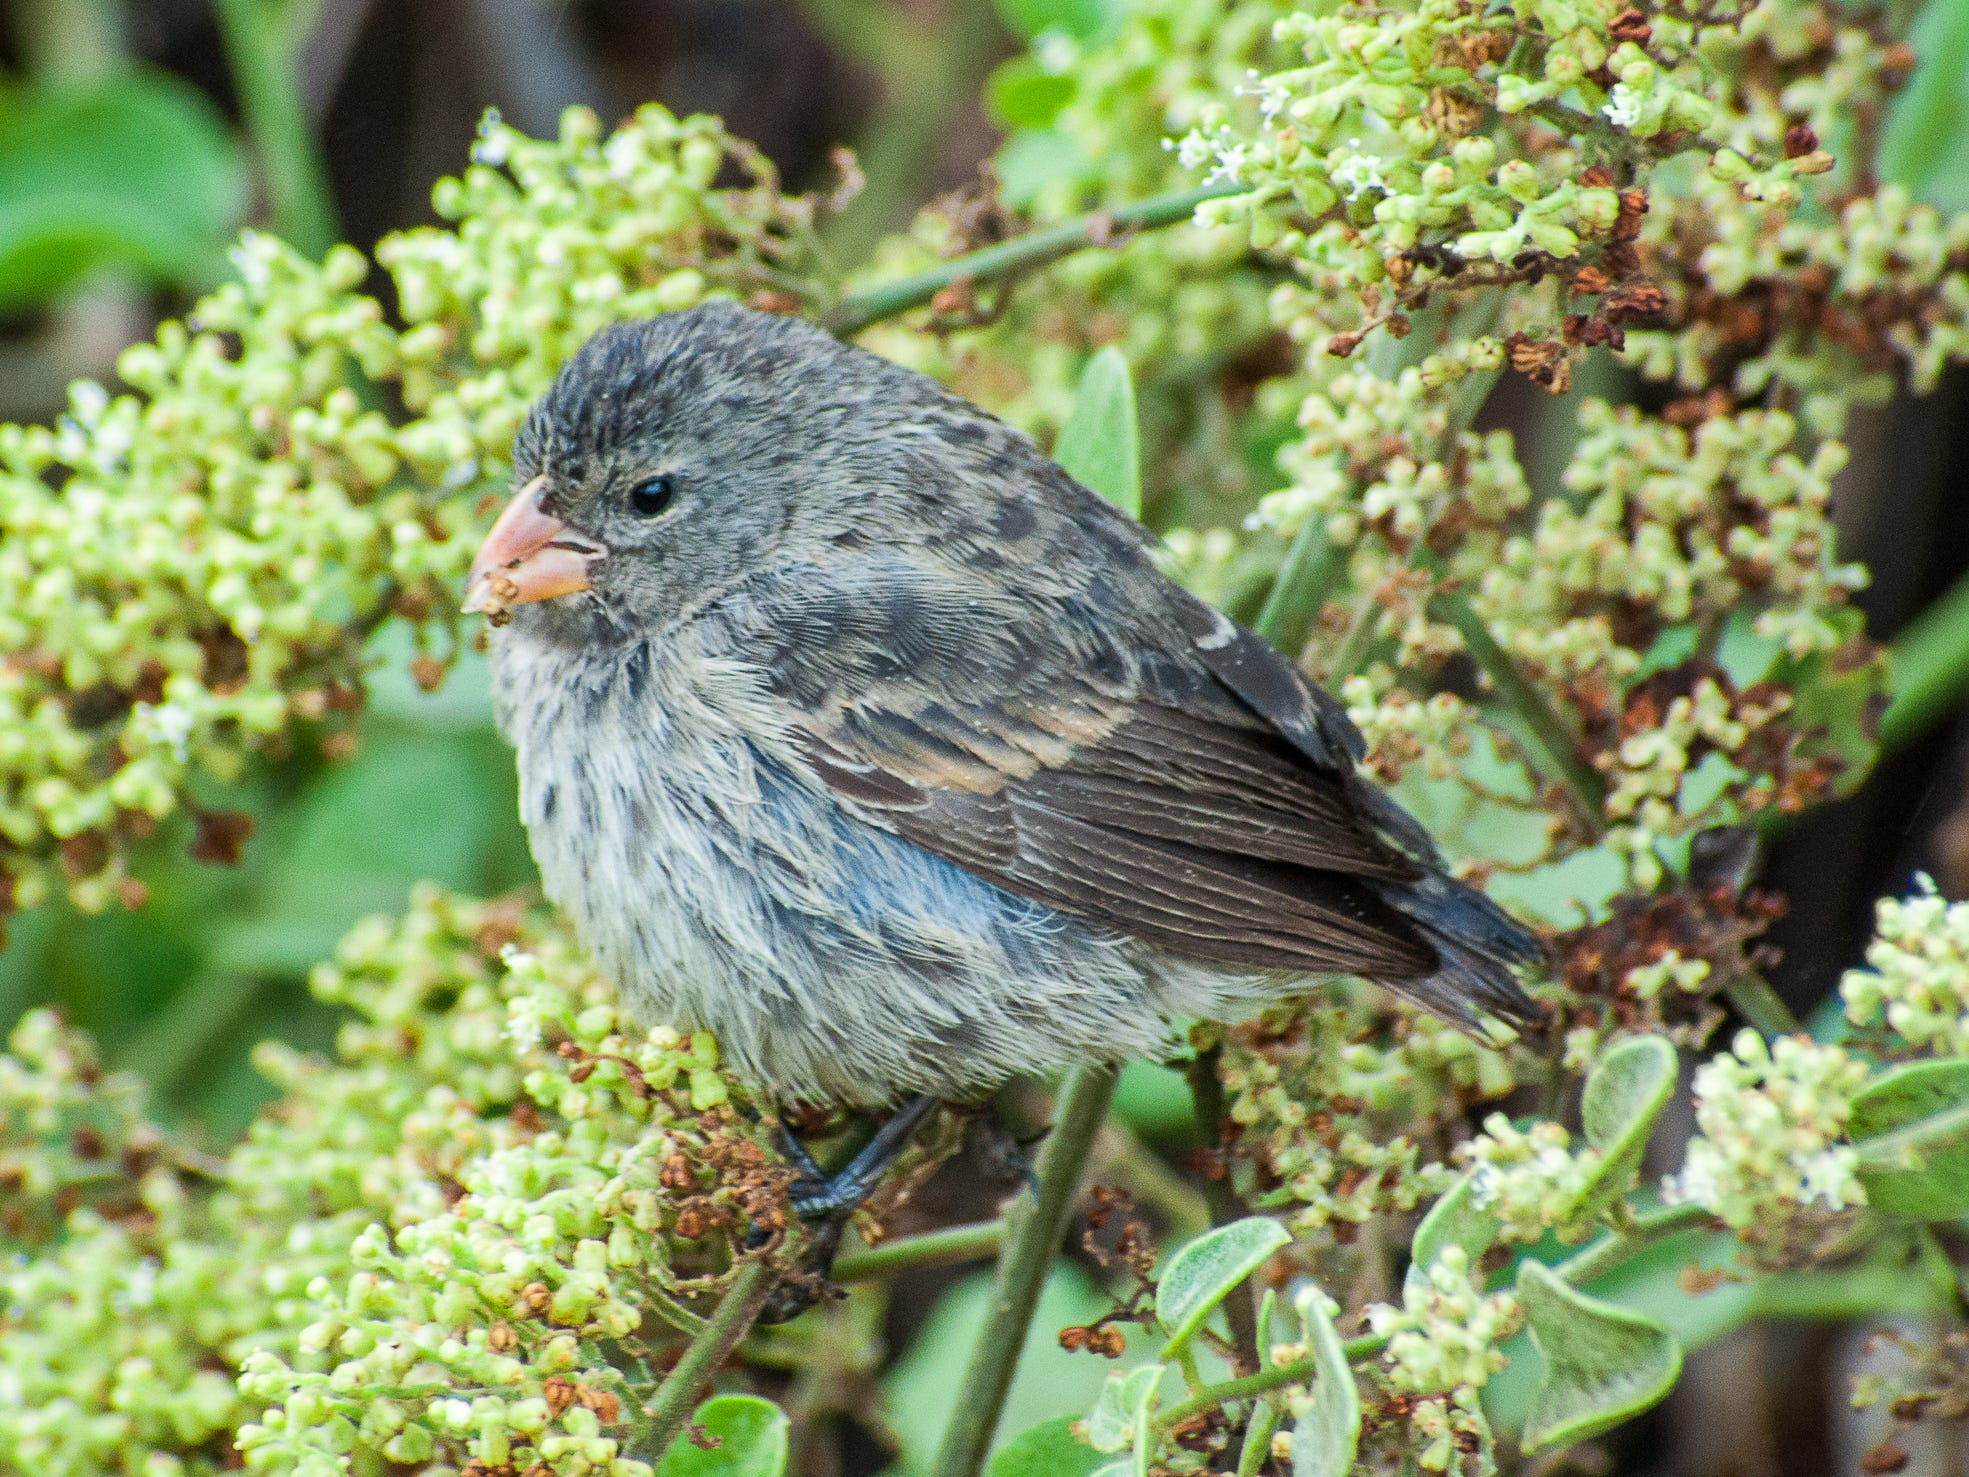 A finch in the Galapagos Islands, Ecuador.